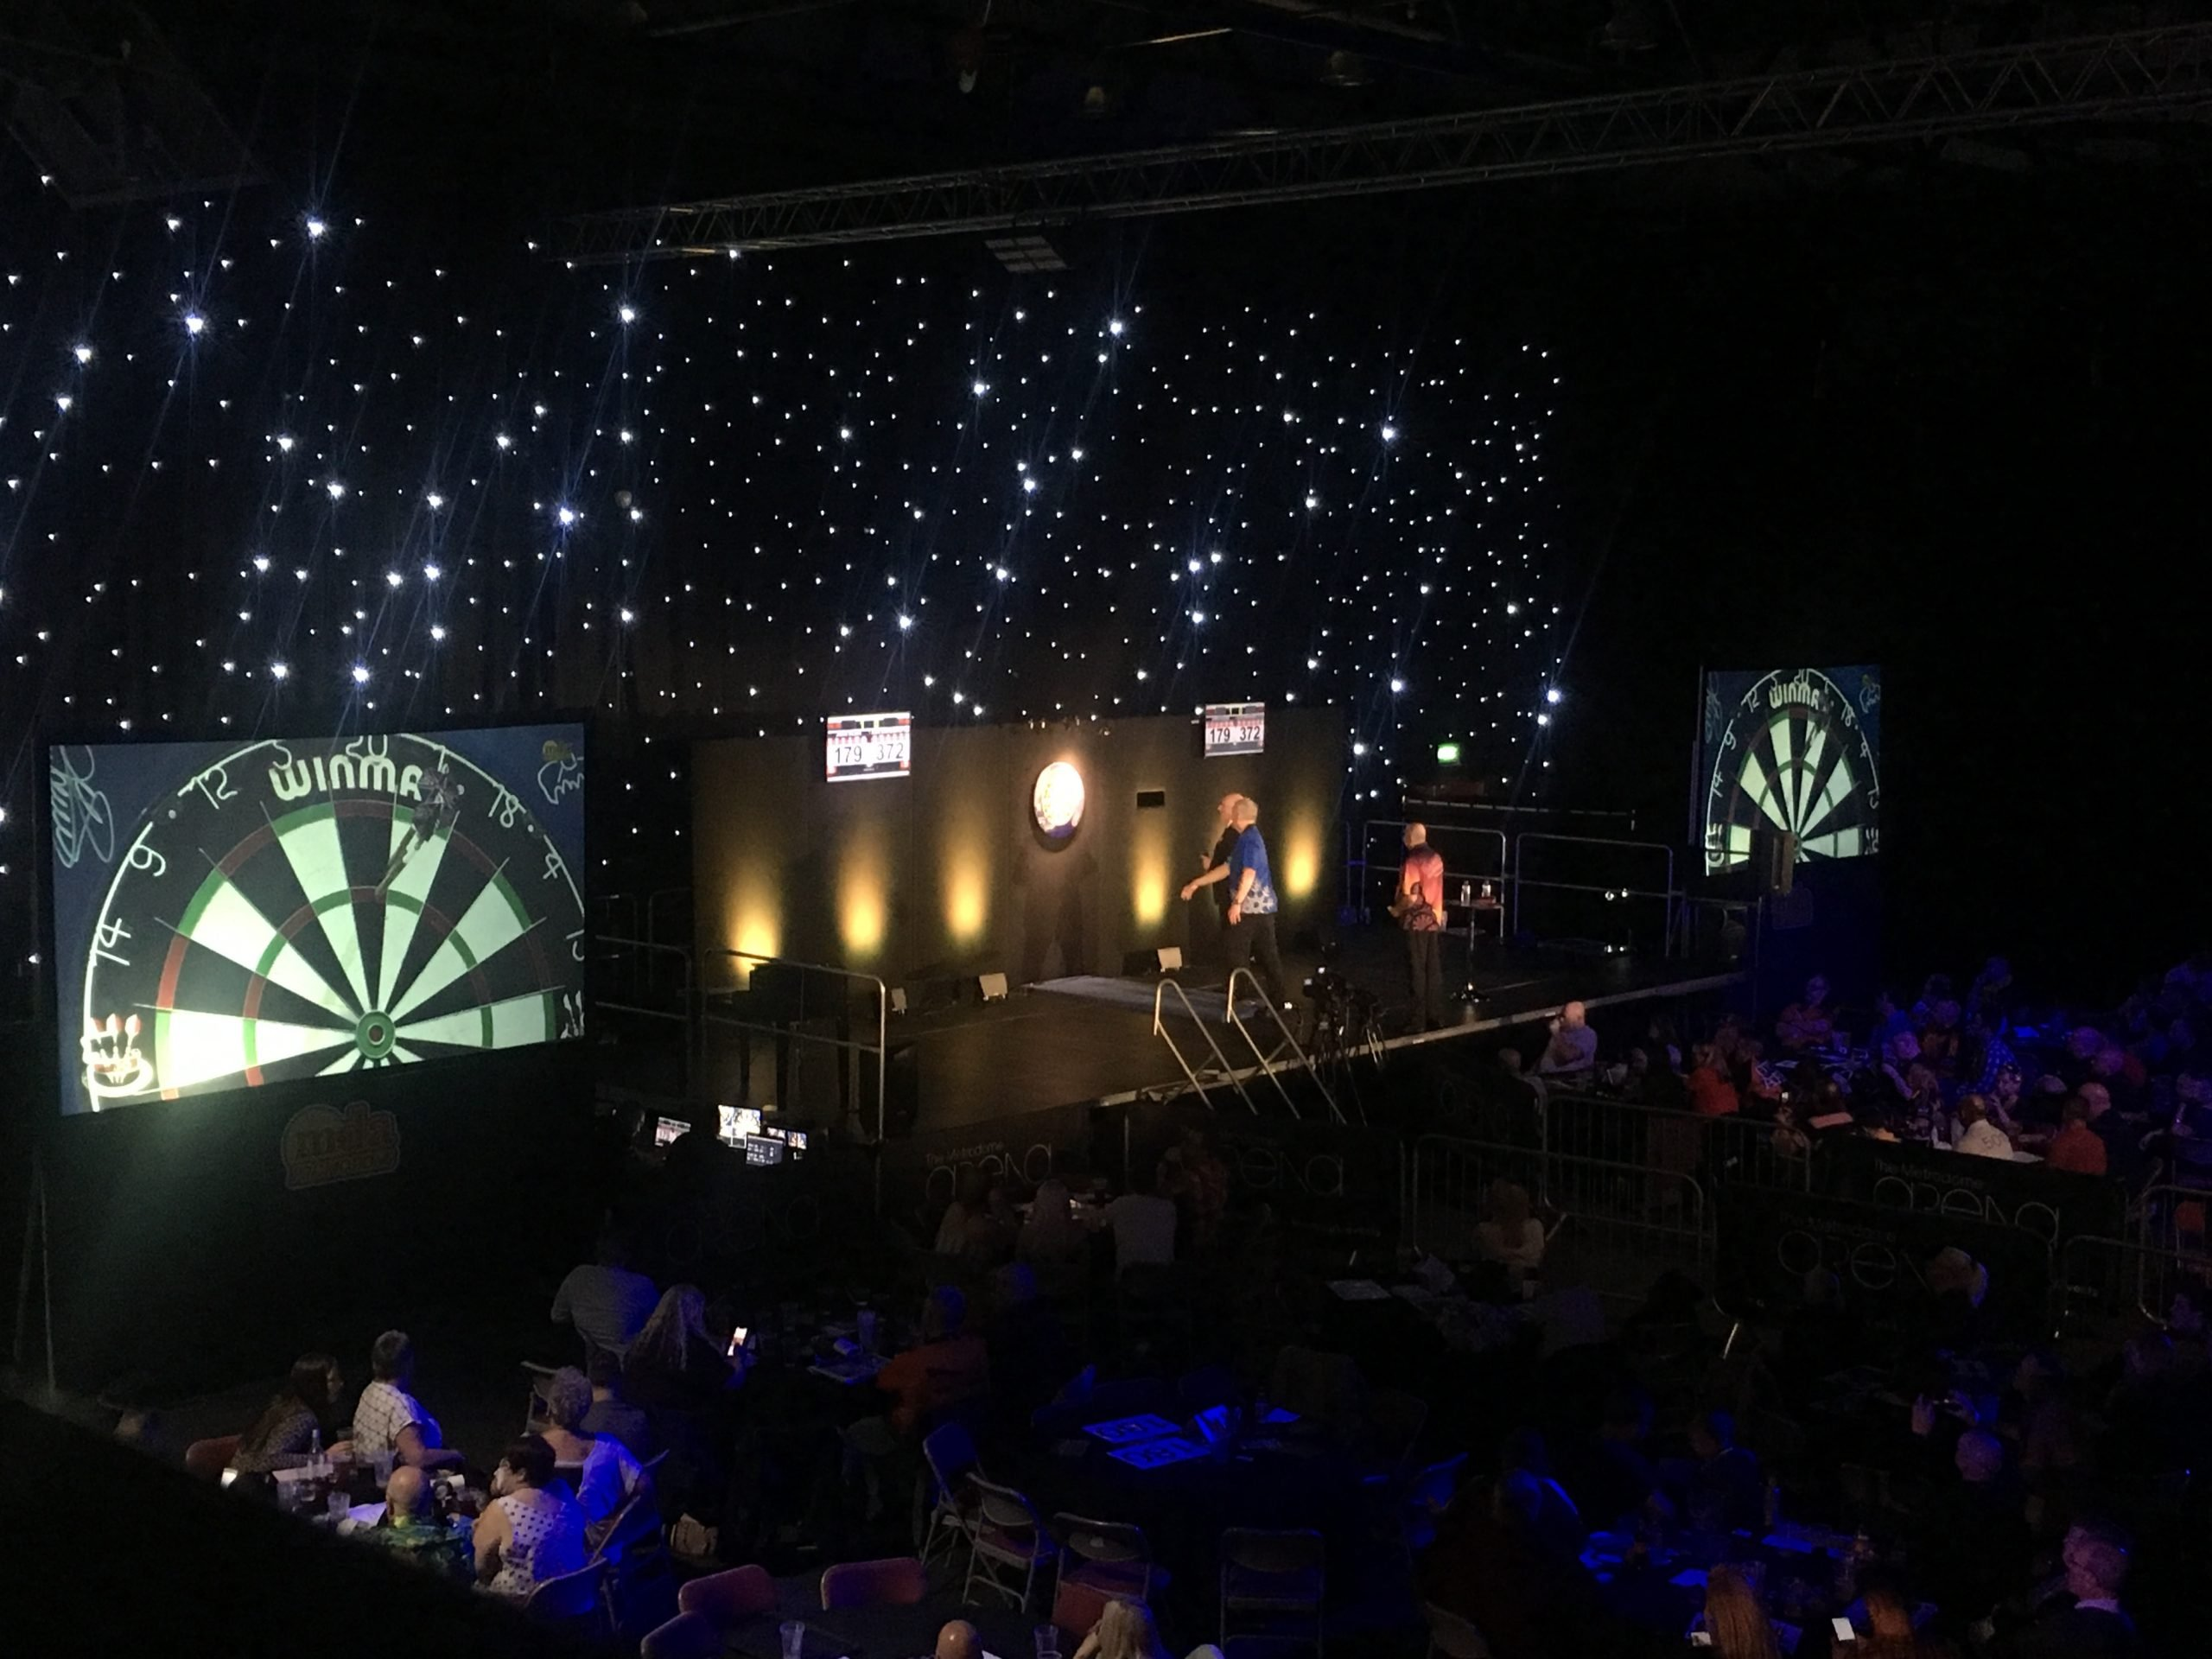 Darts at the Metrodome on large projection screens with lighting